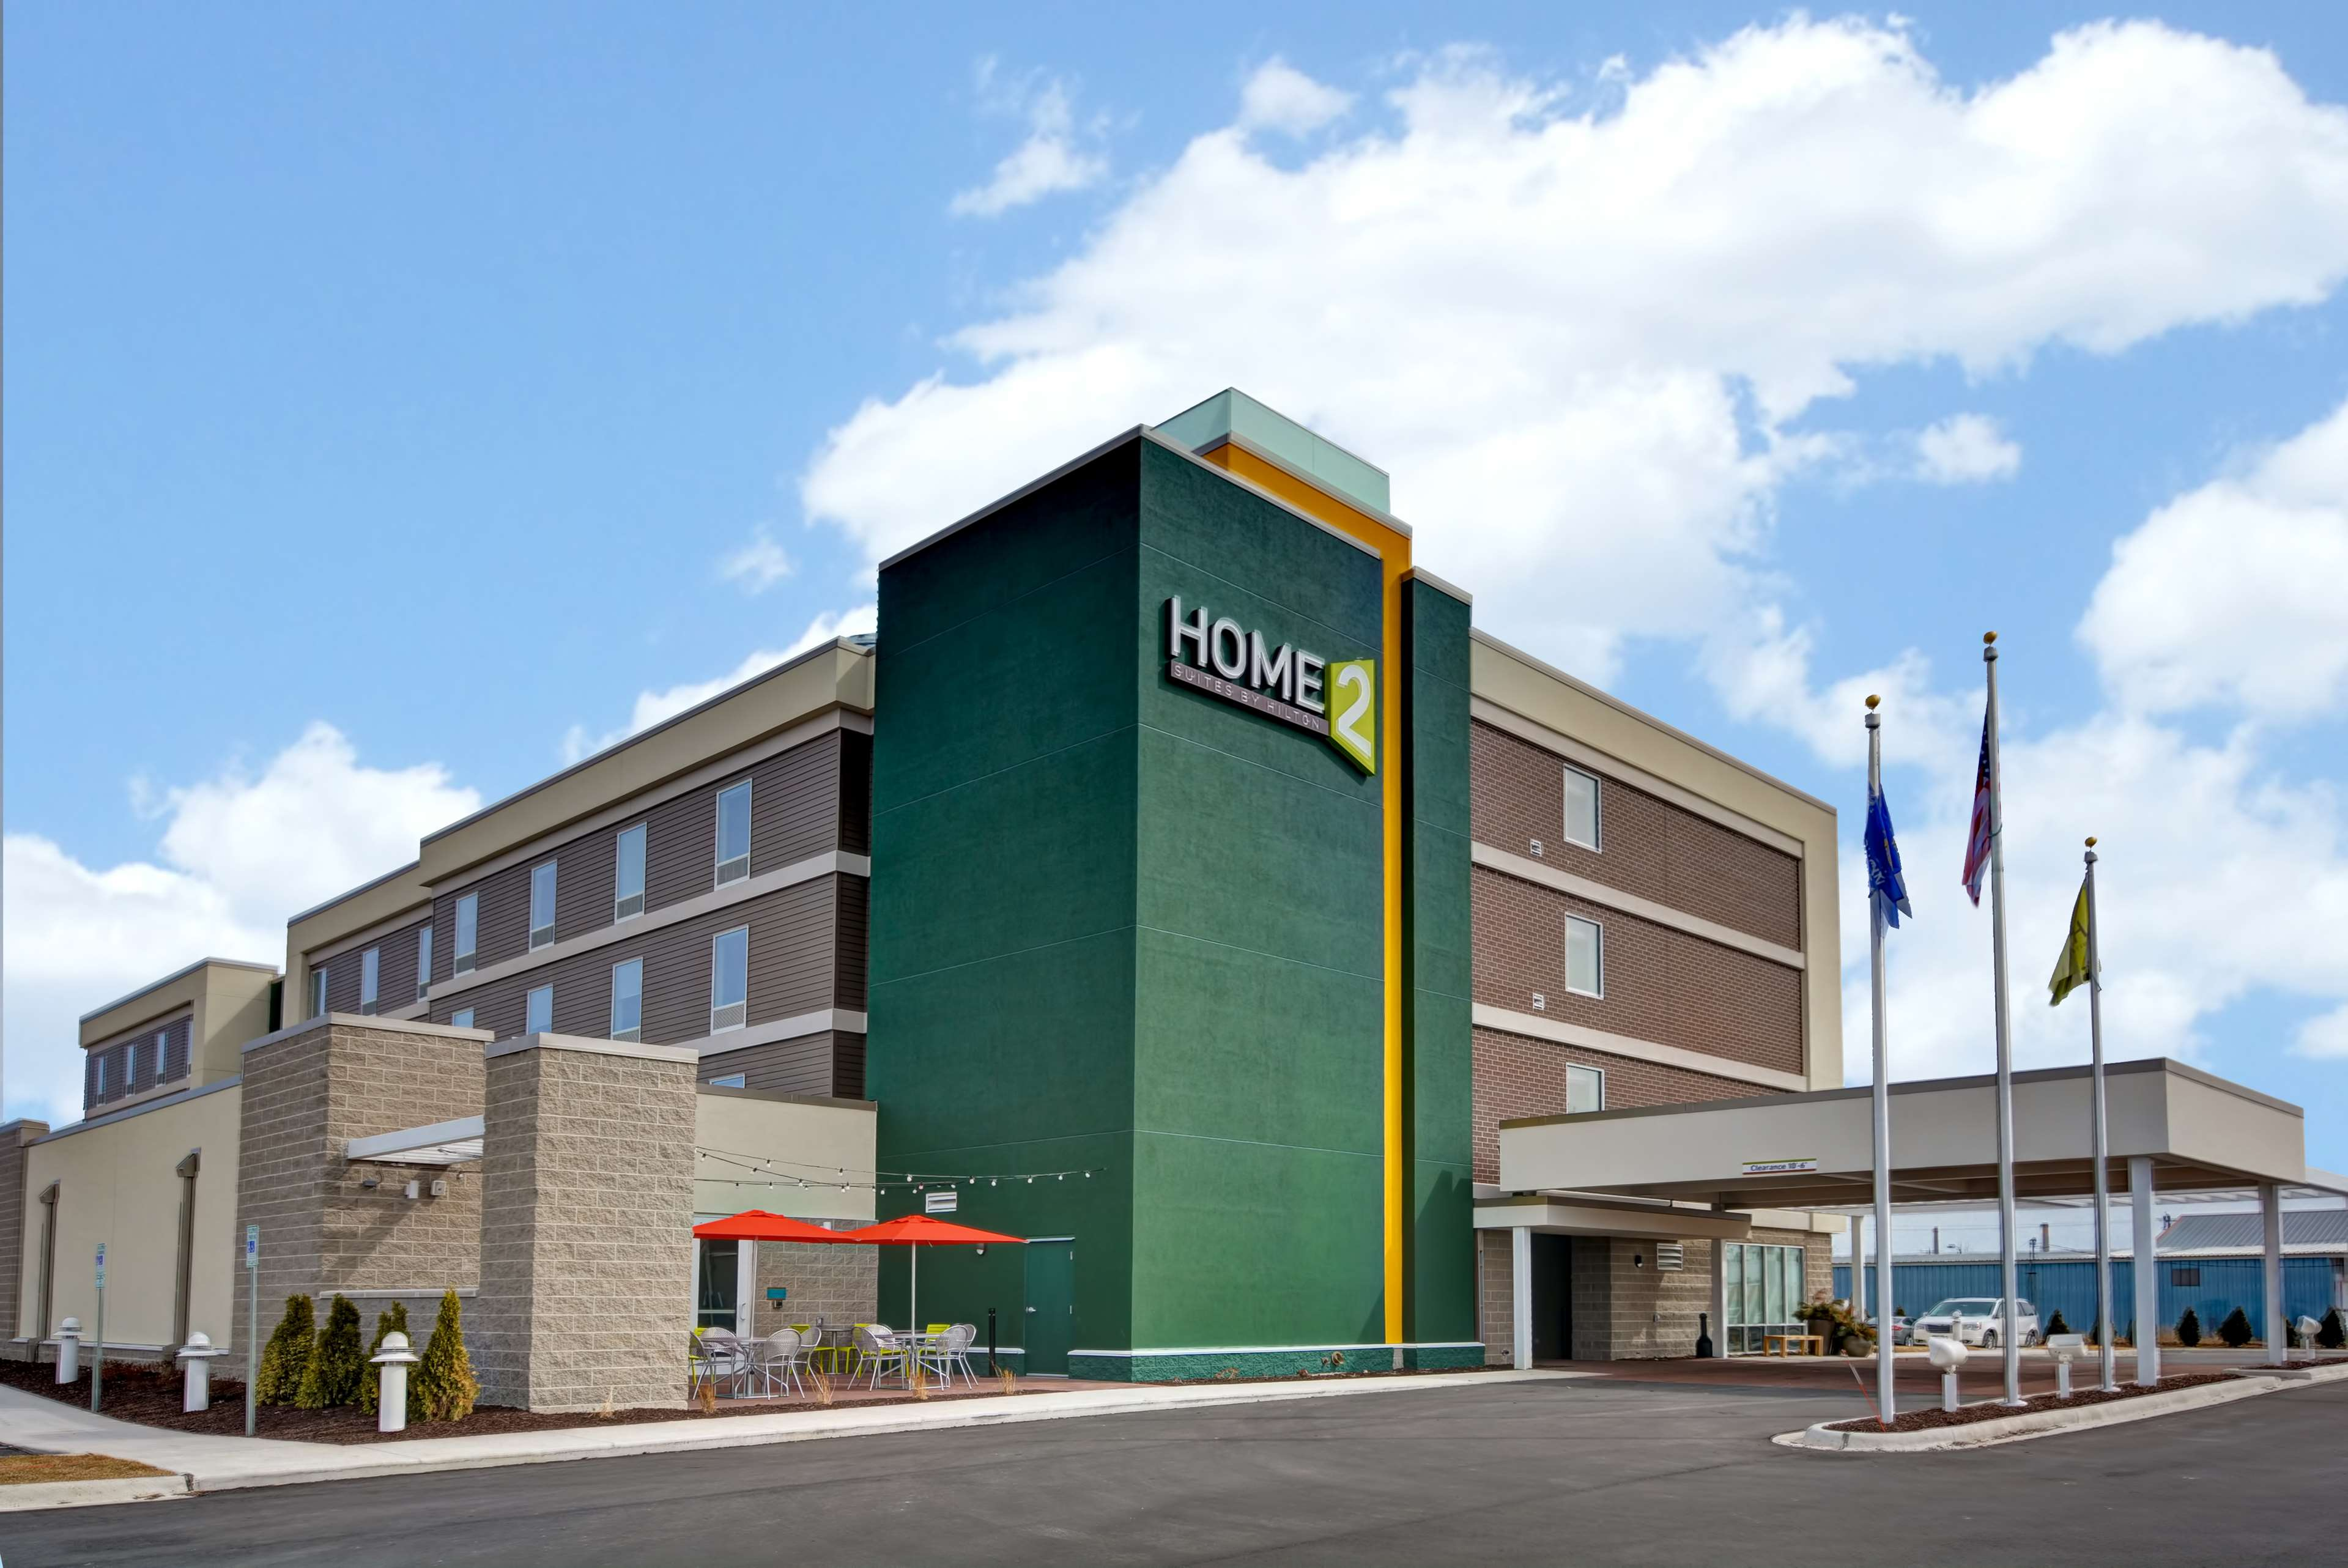 Home2 Suites by Hilton Green Bay image 3